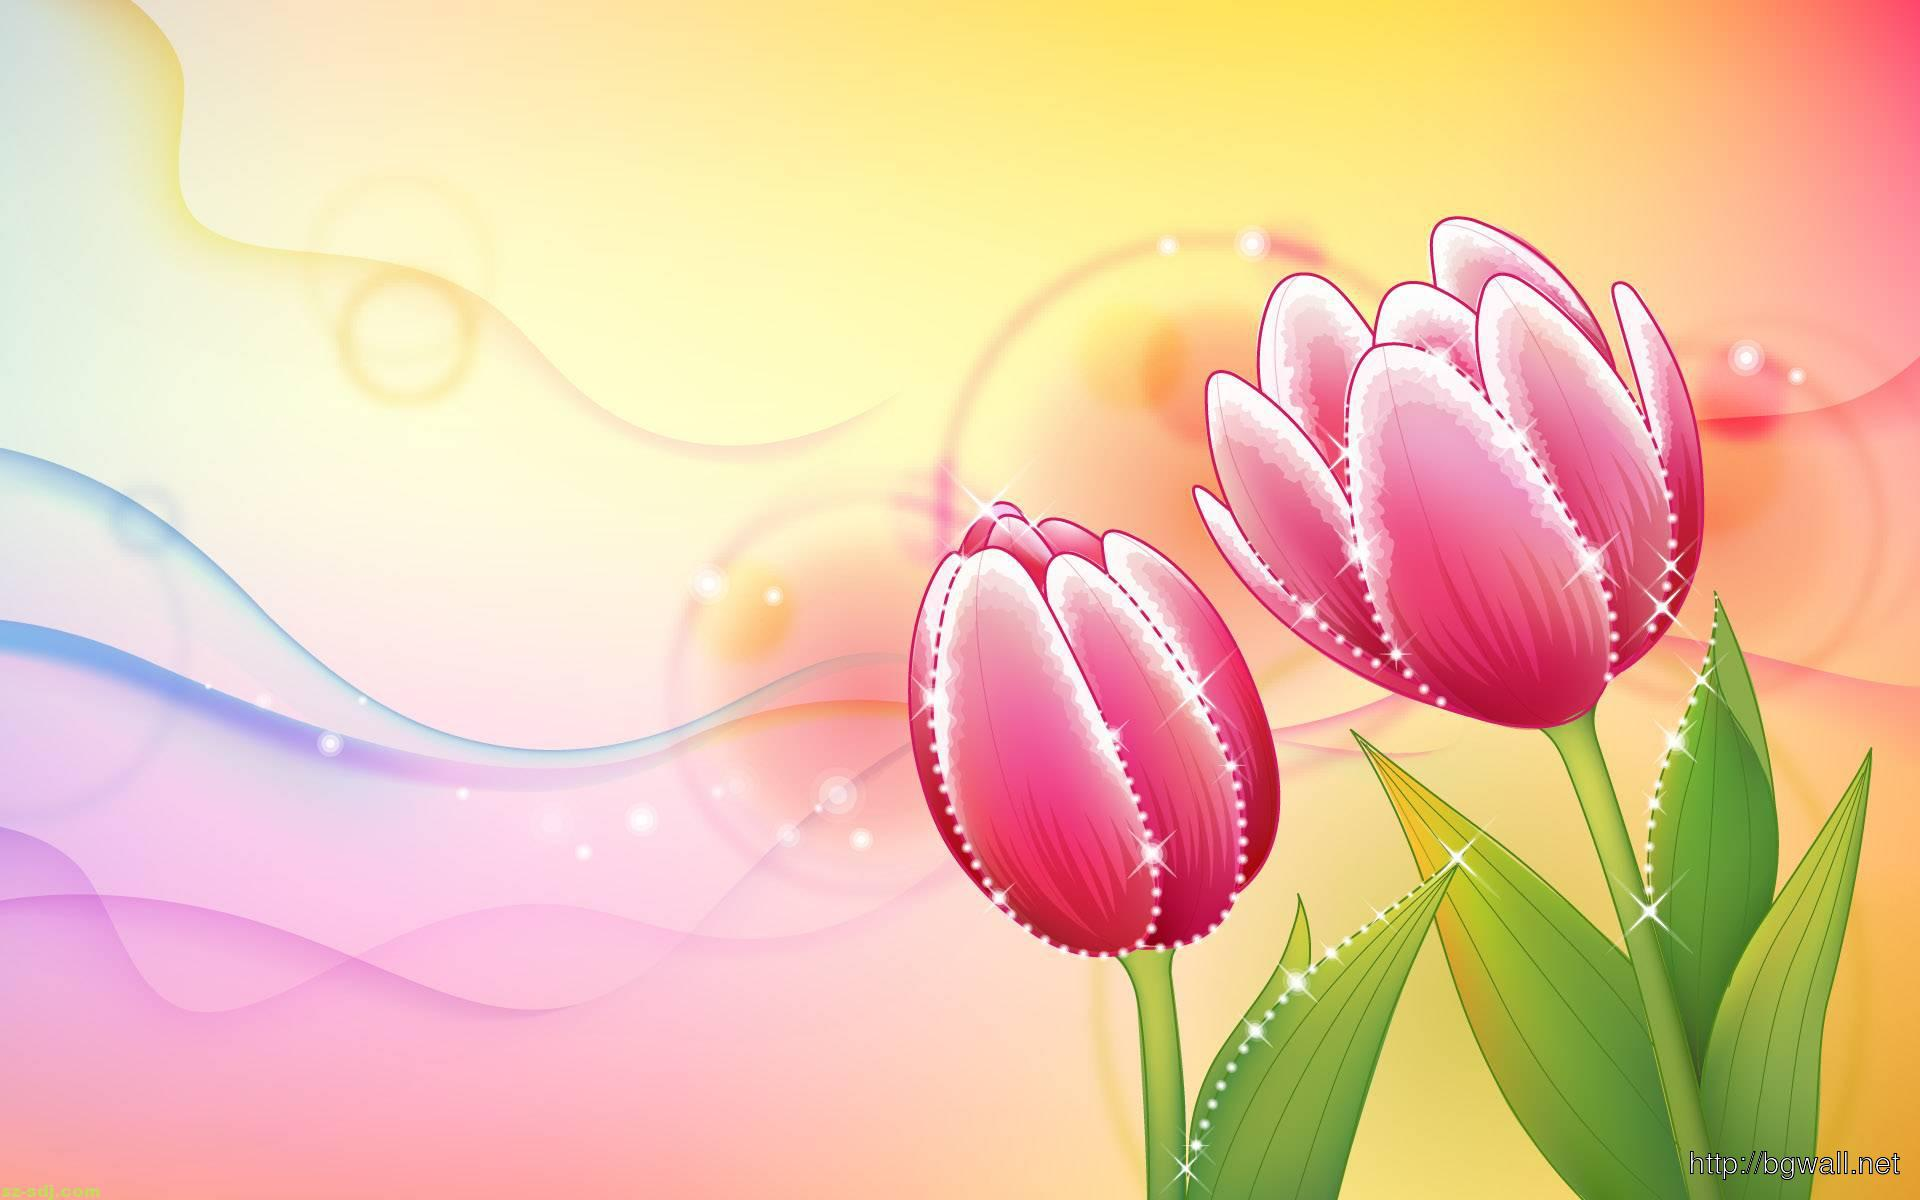 Flowers Art Painting Wallpaper Hd Background Wallpaper Hd